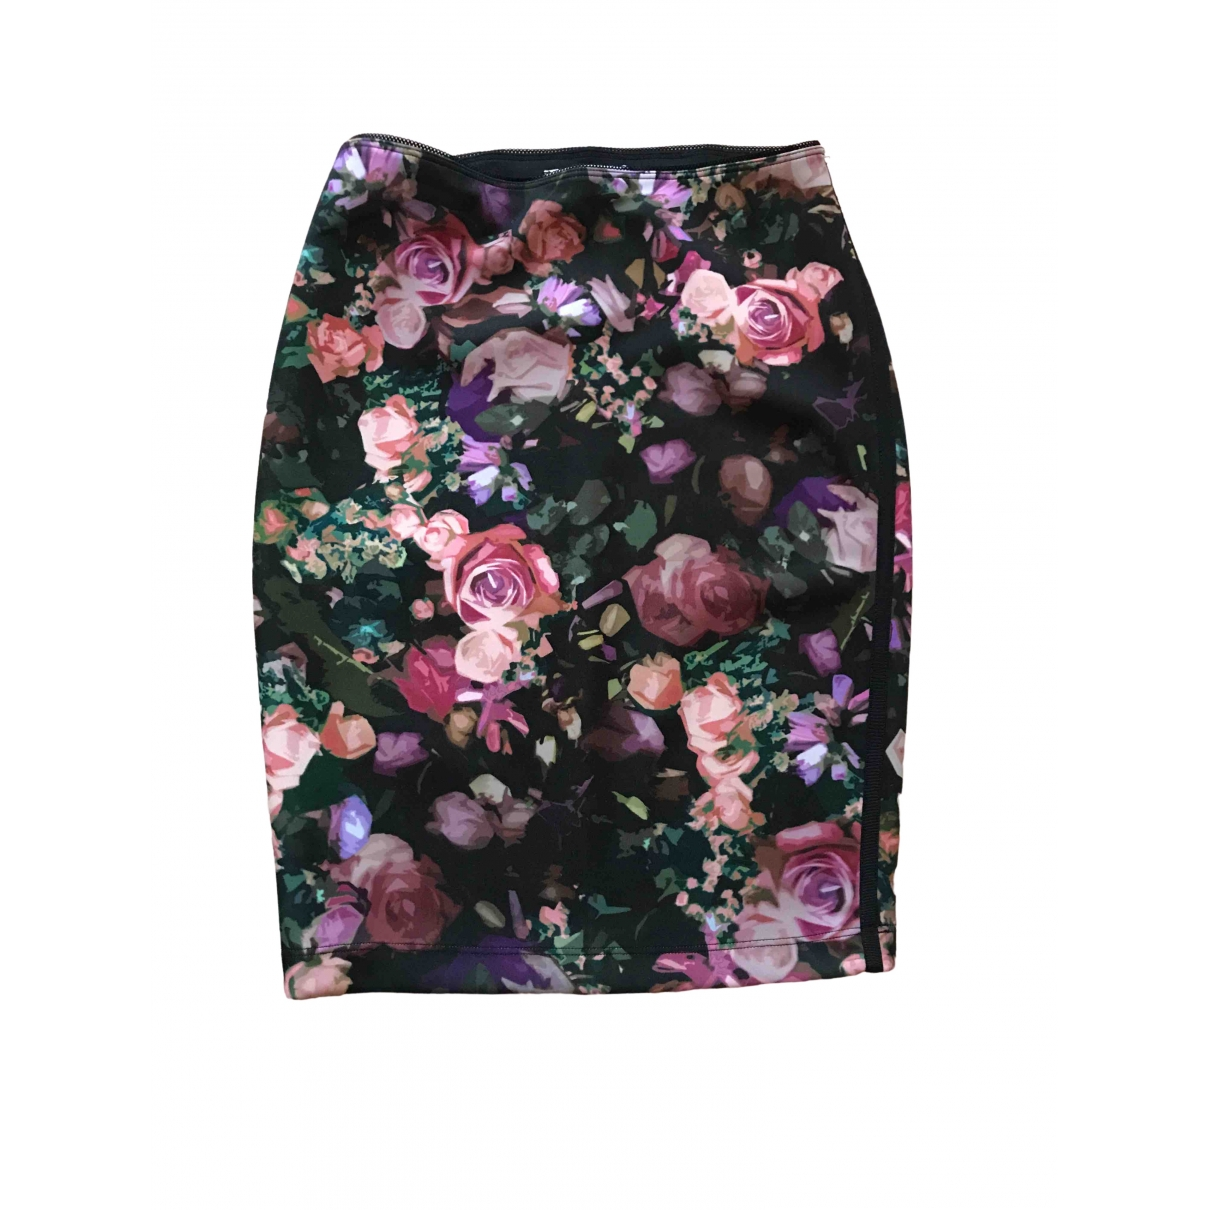 Patrizia Pepe \N Multicolour skirt for Women 40 IT